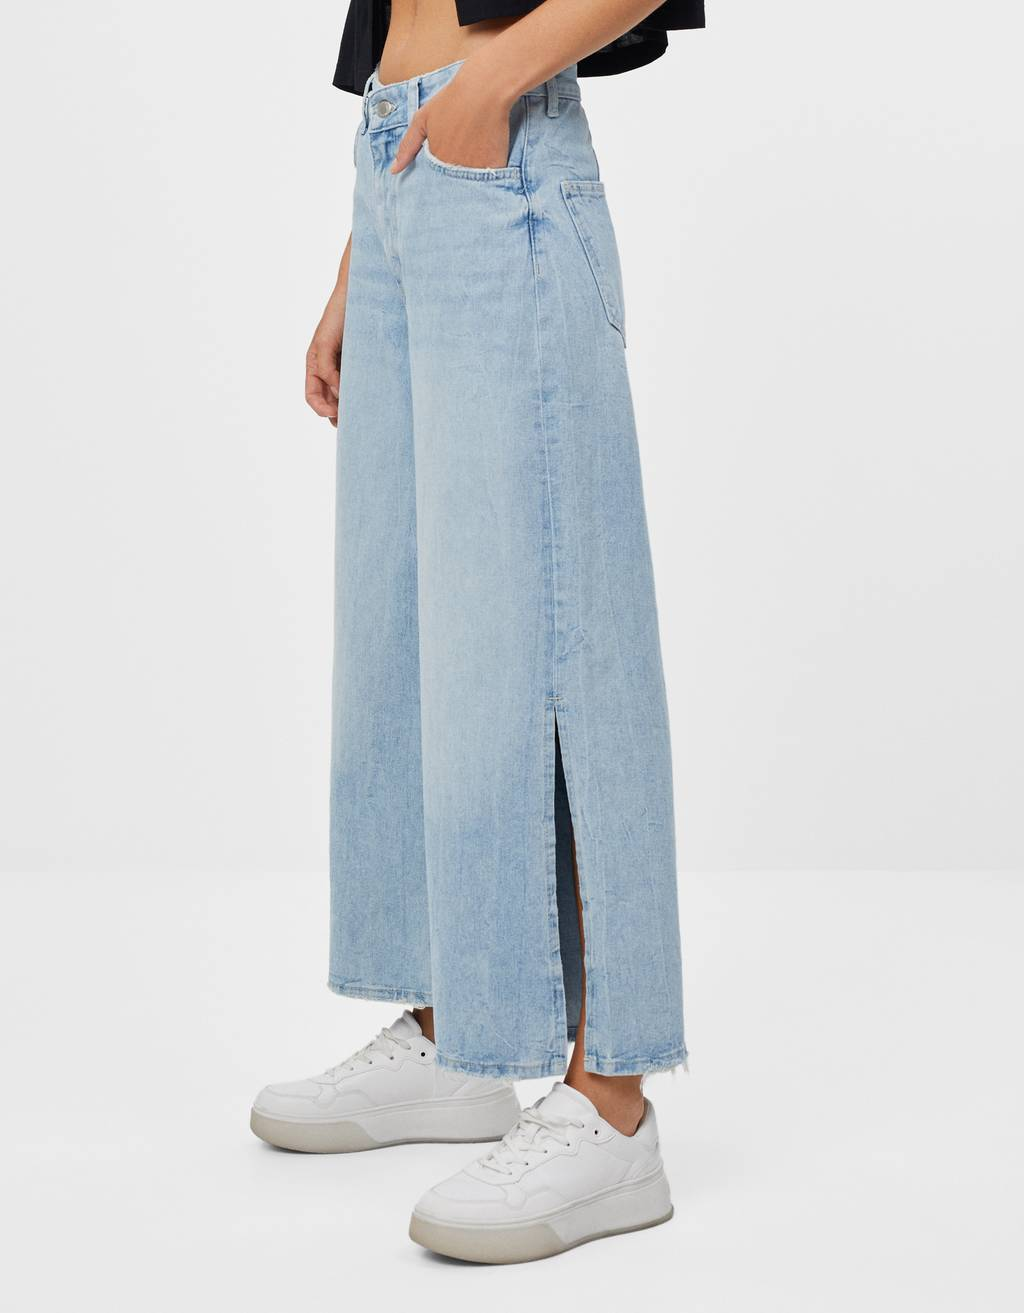 Culotte jeans with slits